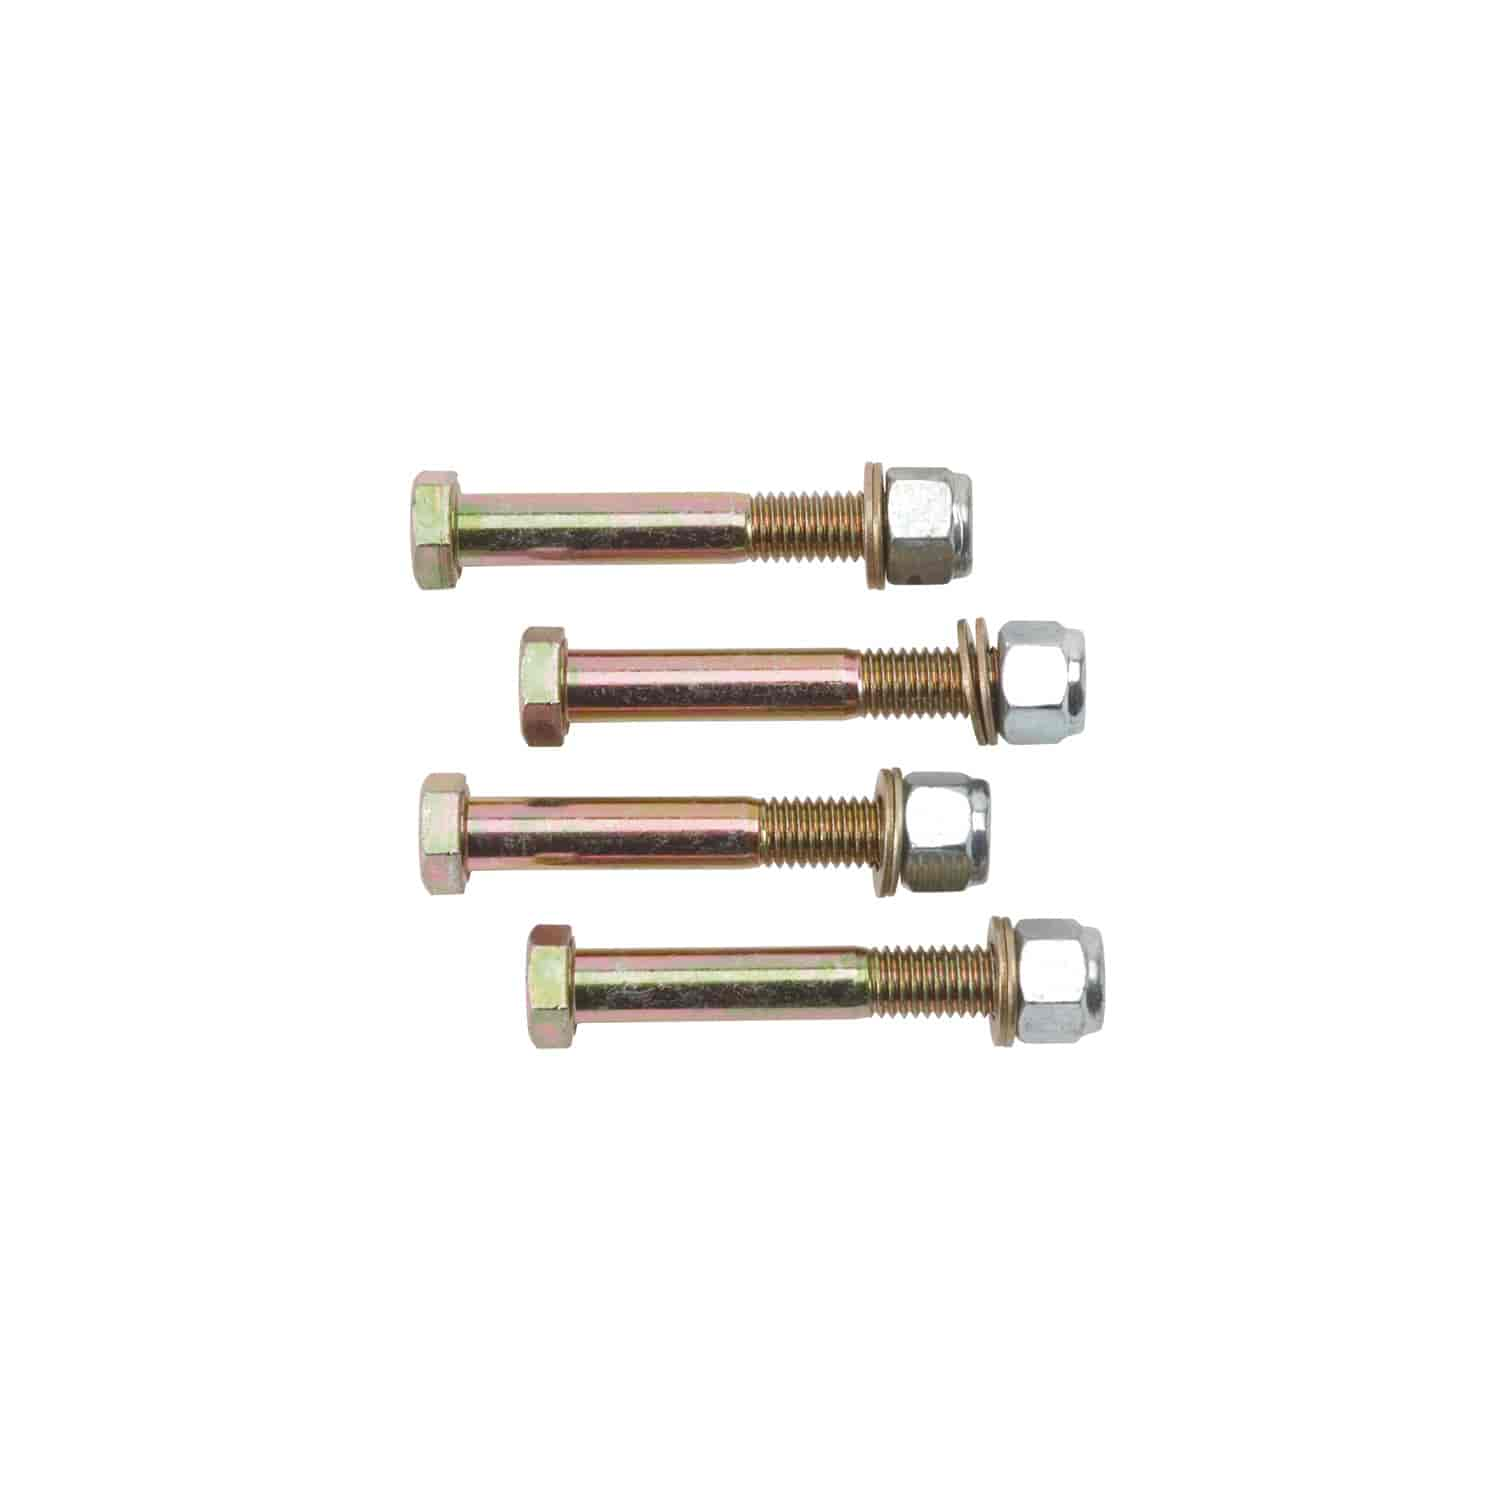 QA1 5217 - QA1 Rear Trailing Arms & Tubular Braces